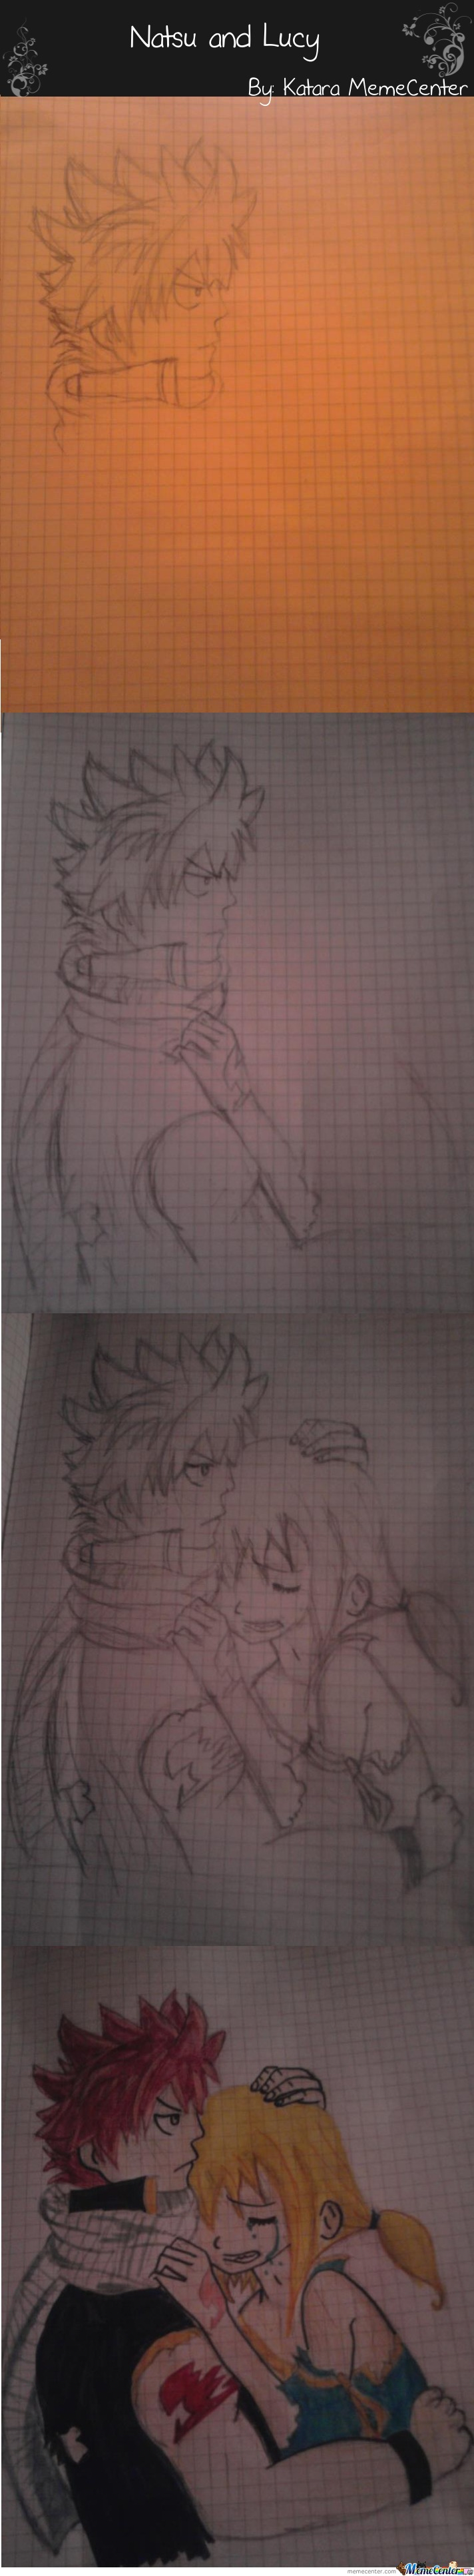 Natsu And Lucy By Me